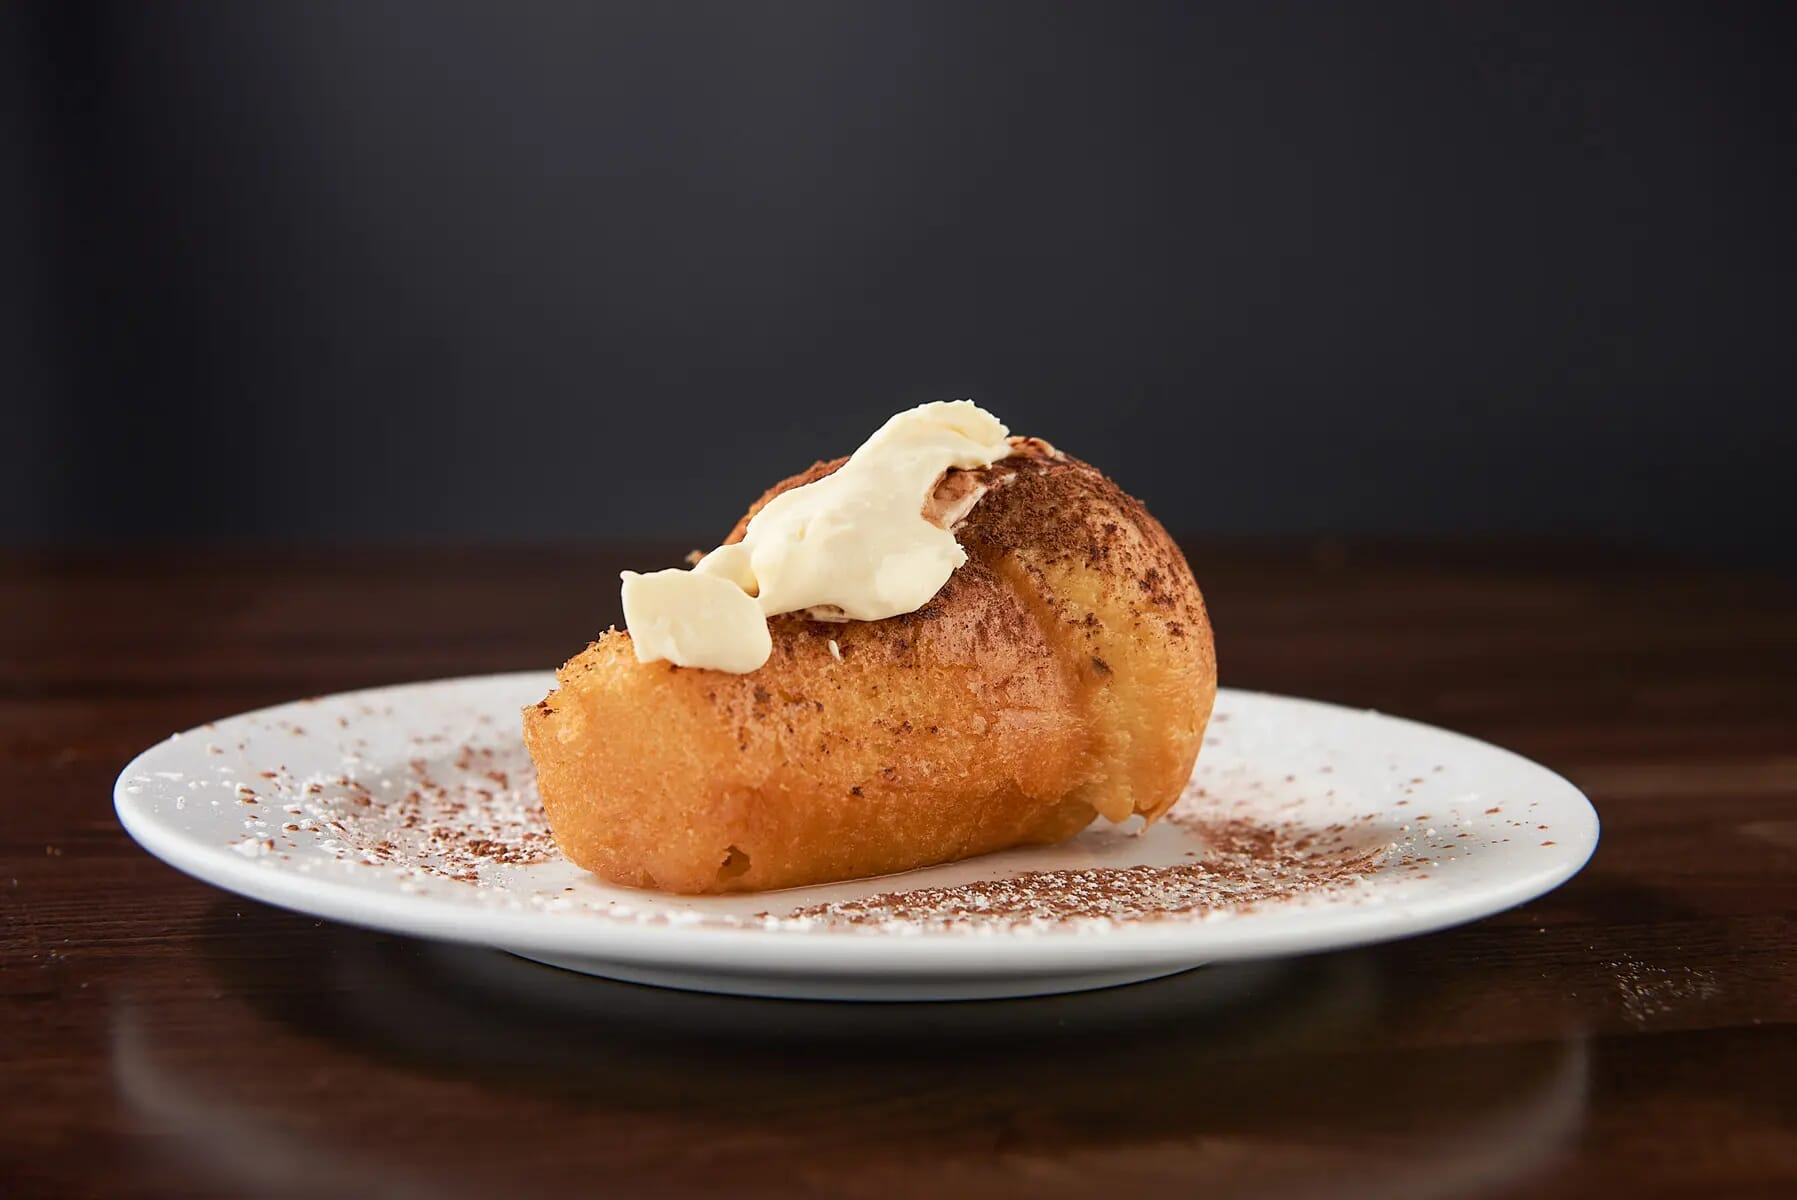 Rum baba food photography London